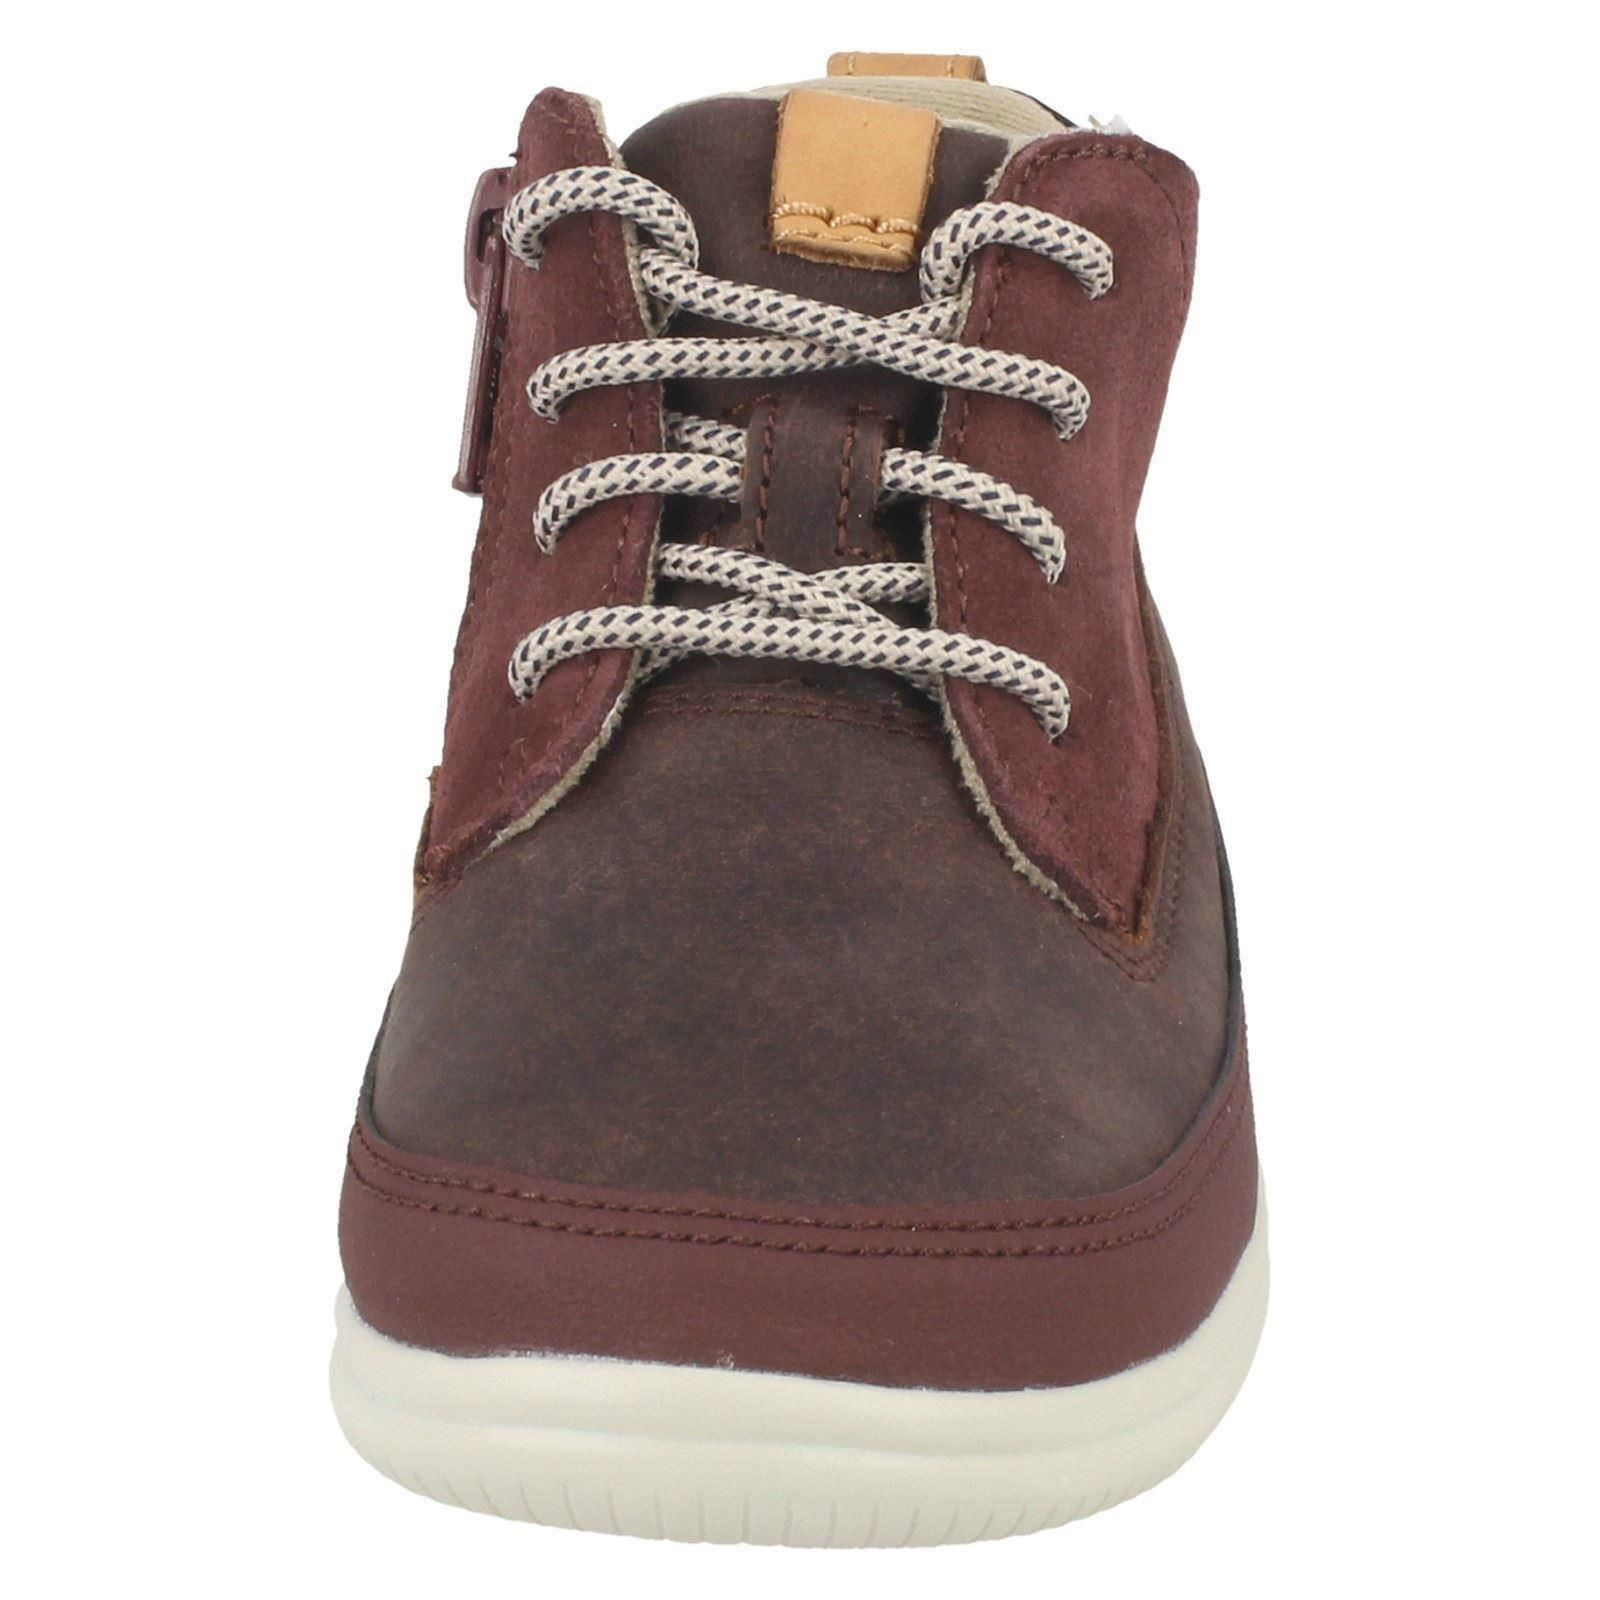 Boys Clarks Casual Ankle Boots /'Cloud Air/'